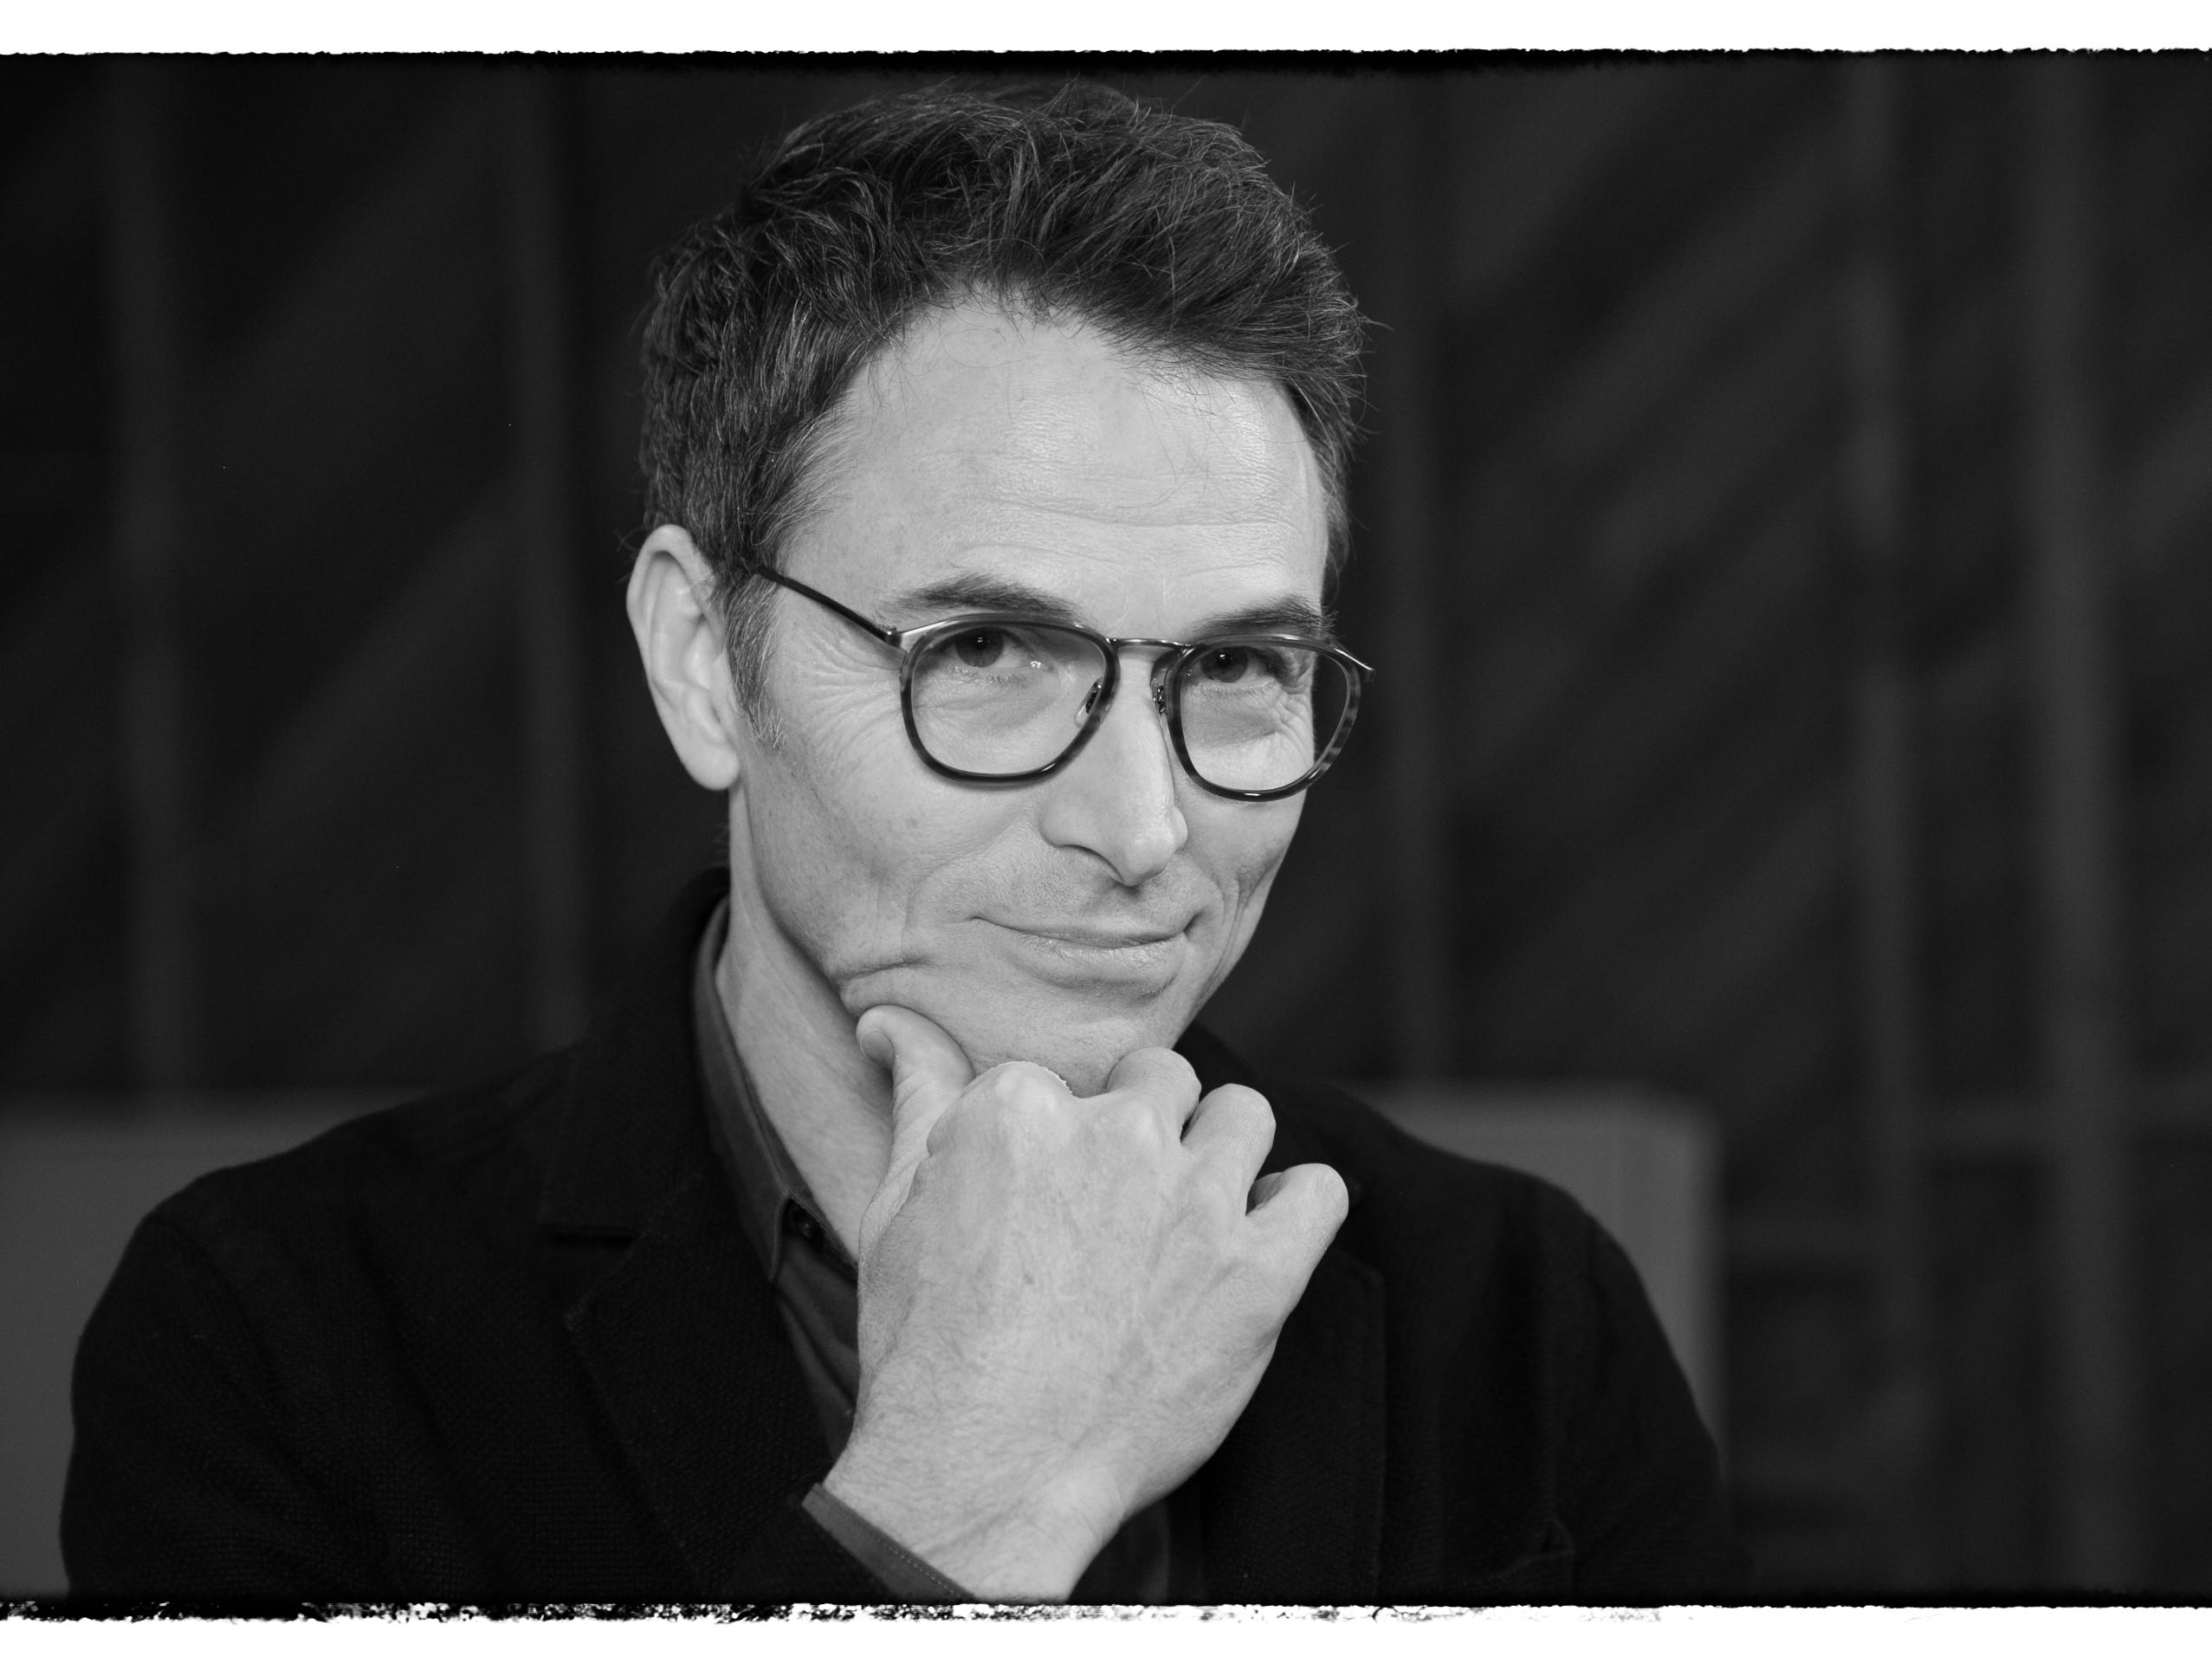 Actor Tim Daly, photographed at CBS in Studio City, CA